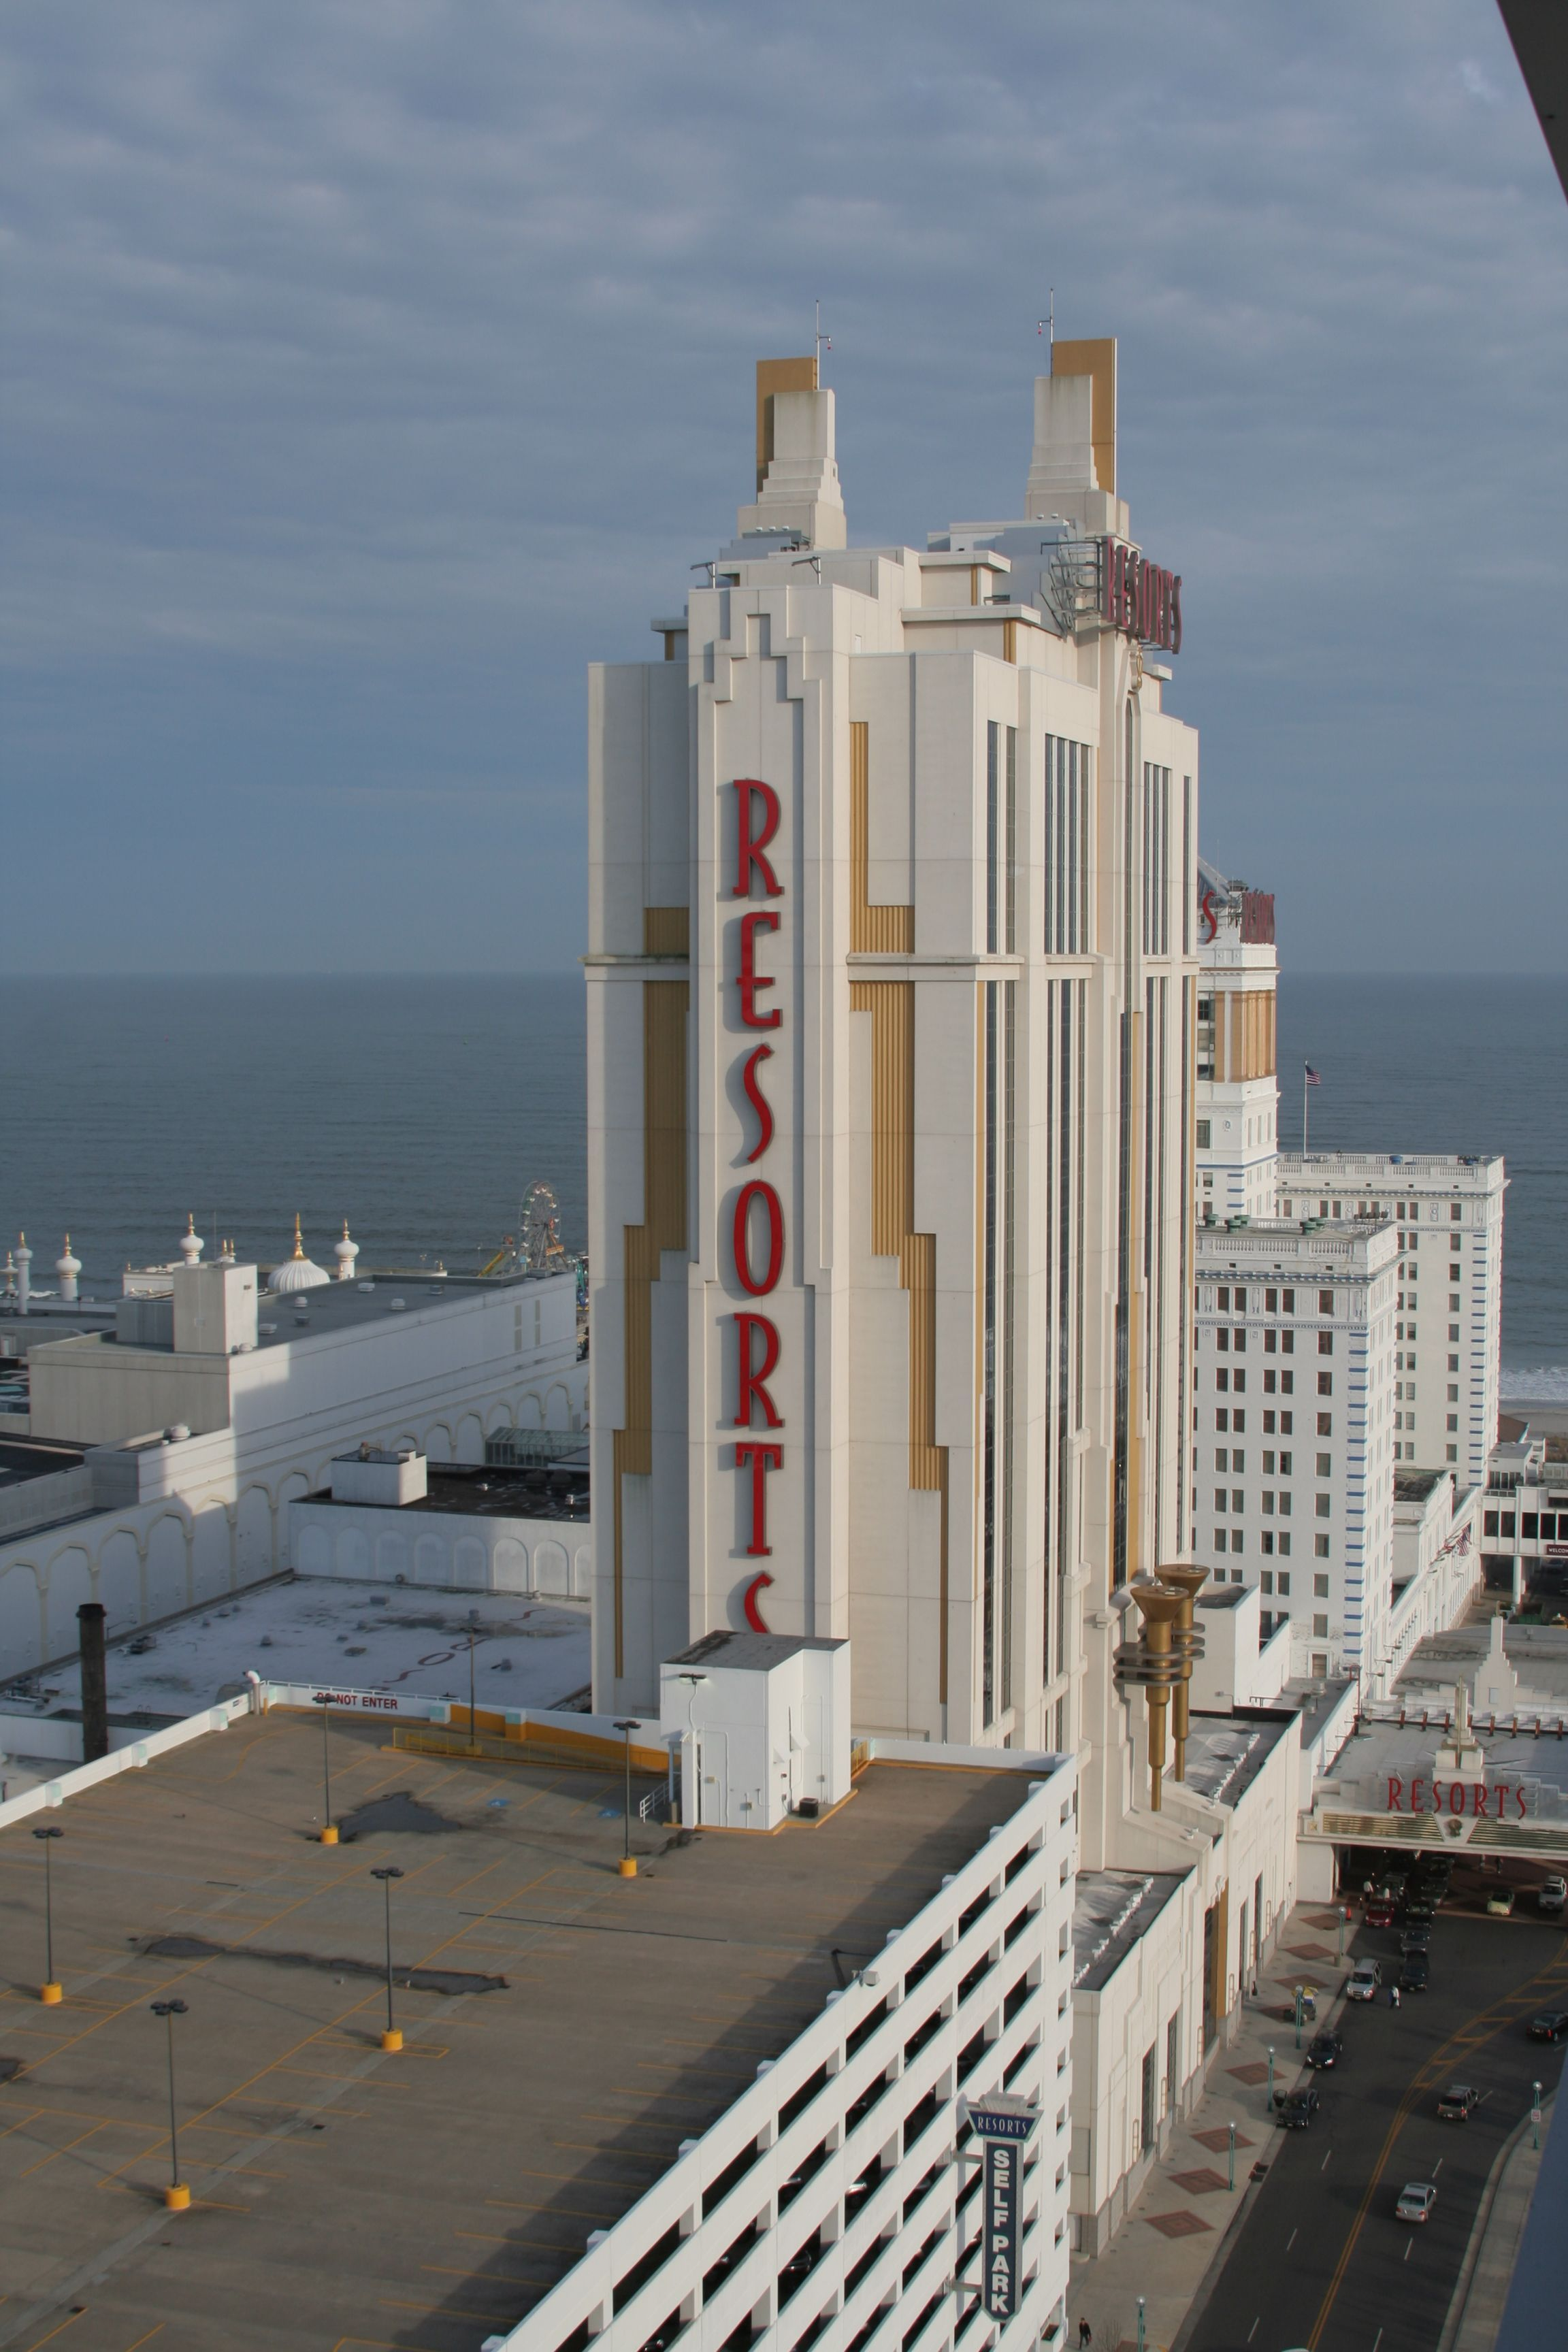 Resorts Hotel Casino Atlantic City Nj Homeless People Stay Here The Buffet Smells Like W Atlantic City Casino Casino Hotel Ferry Building San Francisco